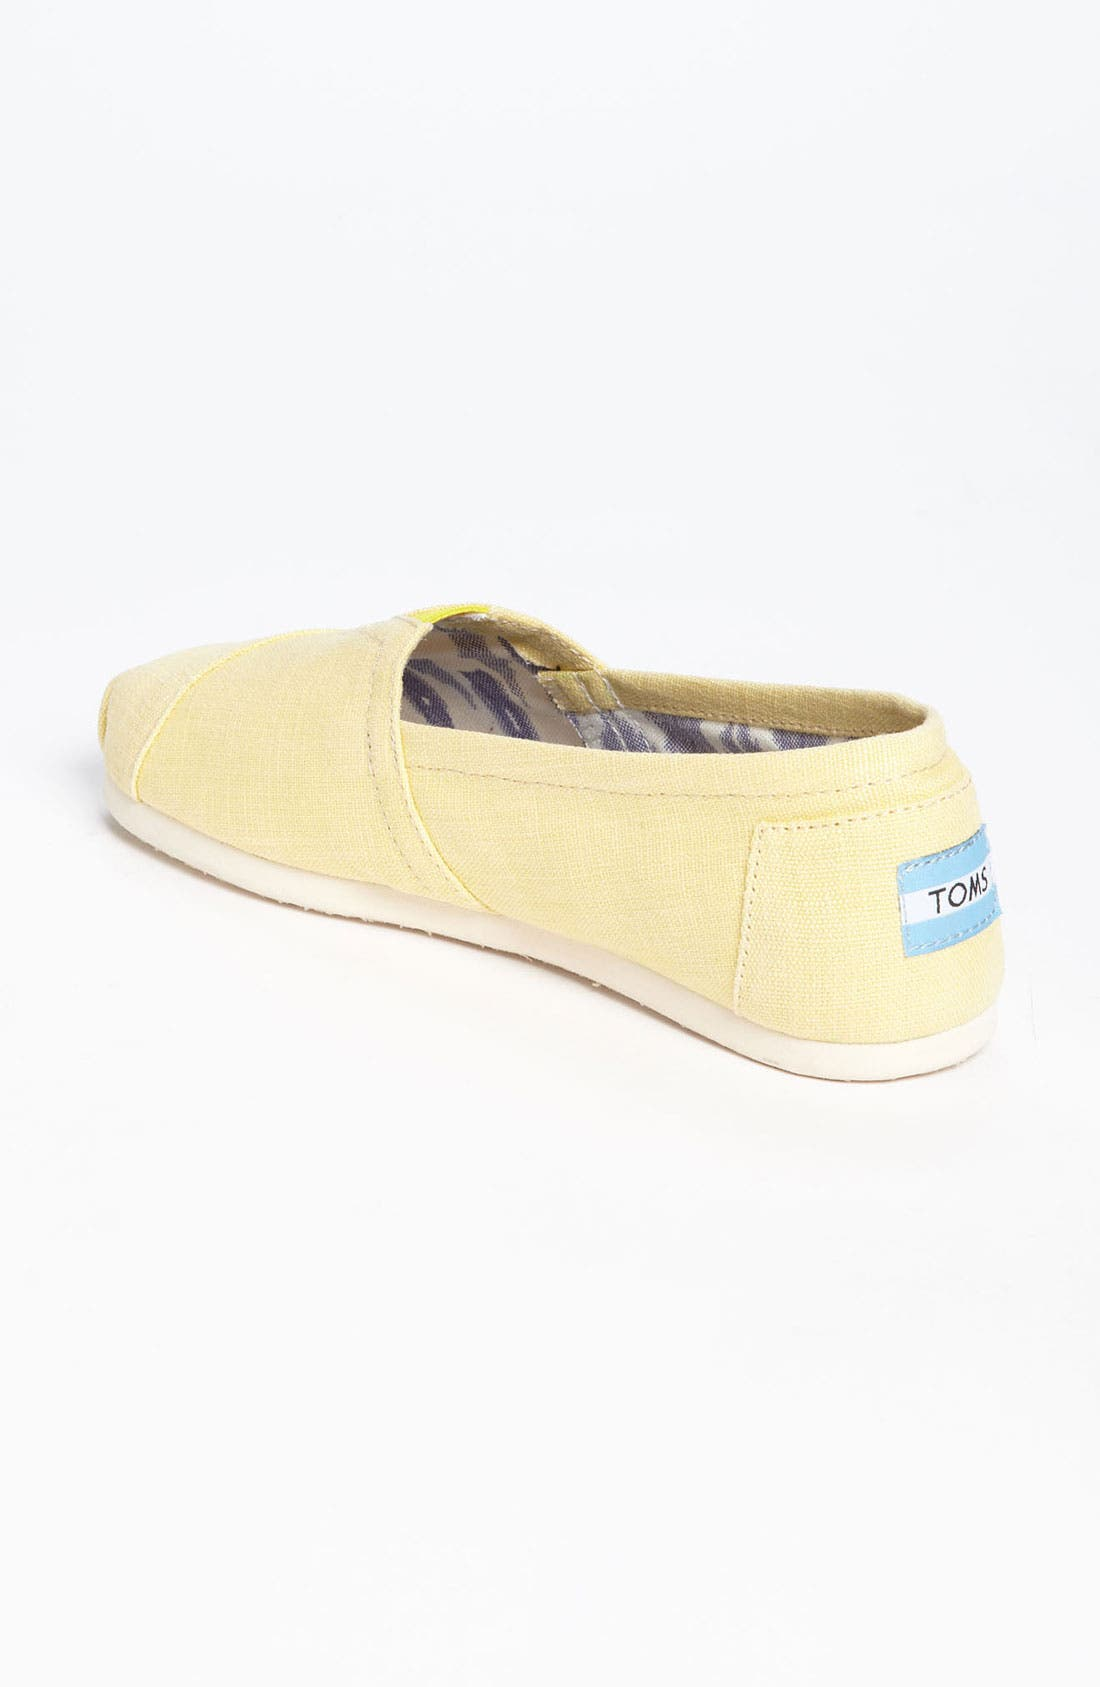 Alternate Image 2  - TOMS 'Earthwise' Slip-On (Nordstrom Exclusive) (Women)